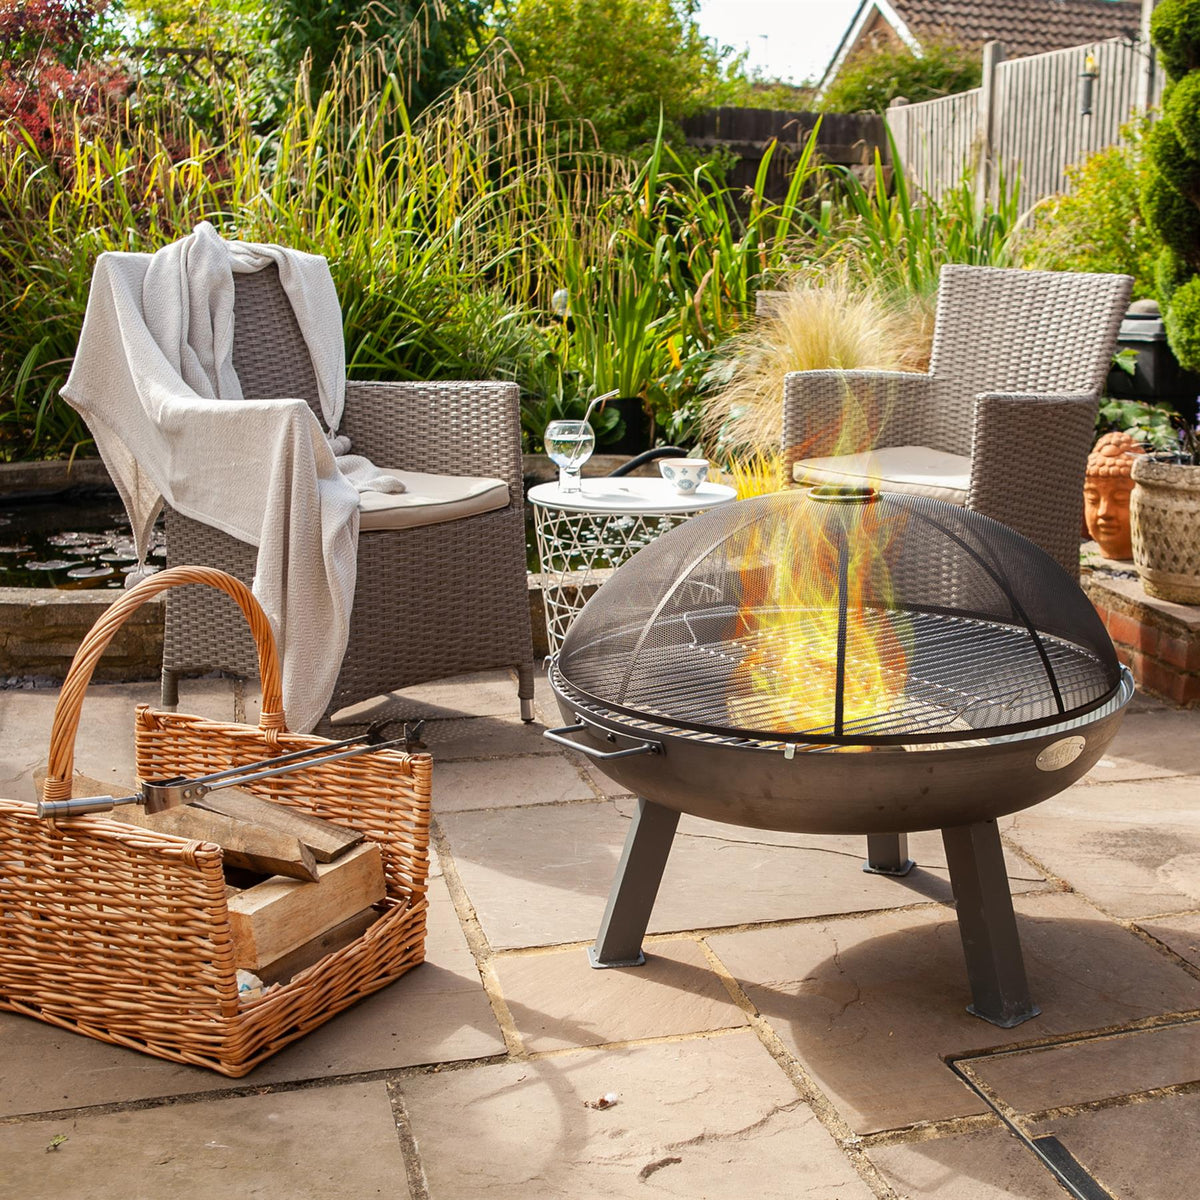 Harbour Housewares Round Firepit Grill - 48.5cm